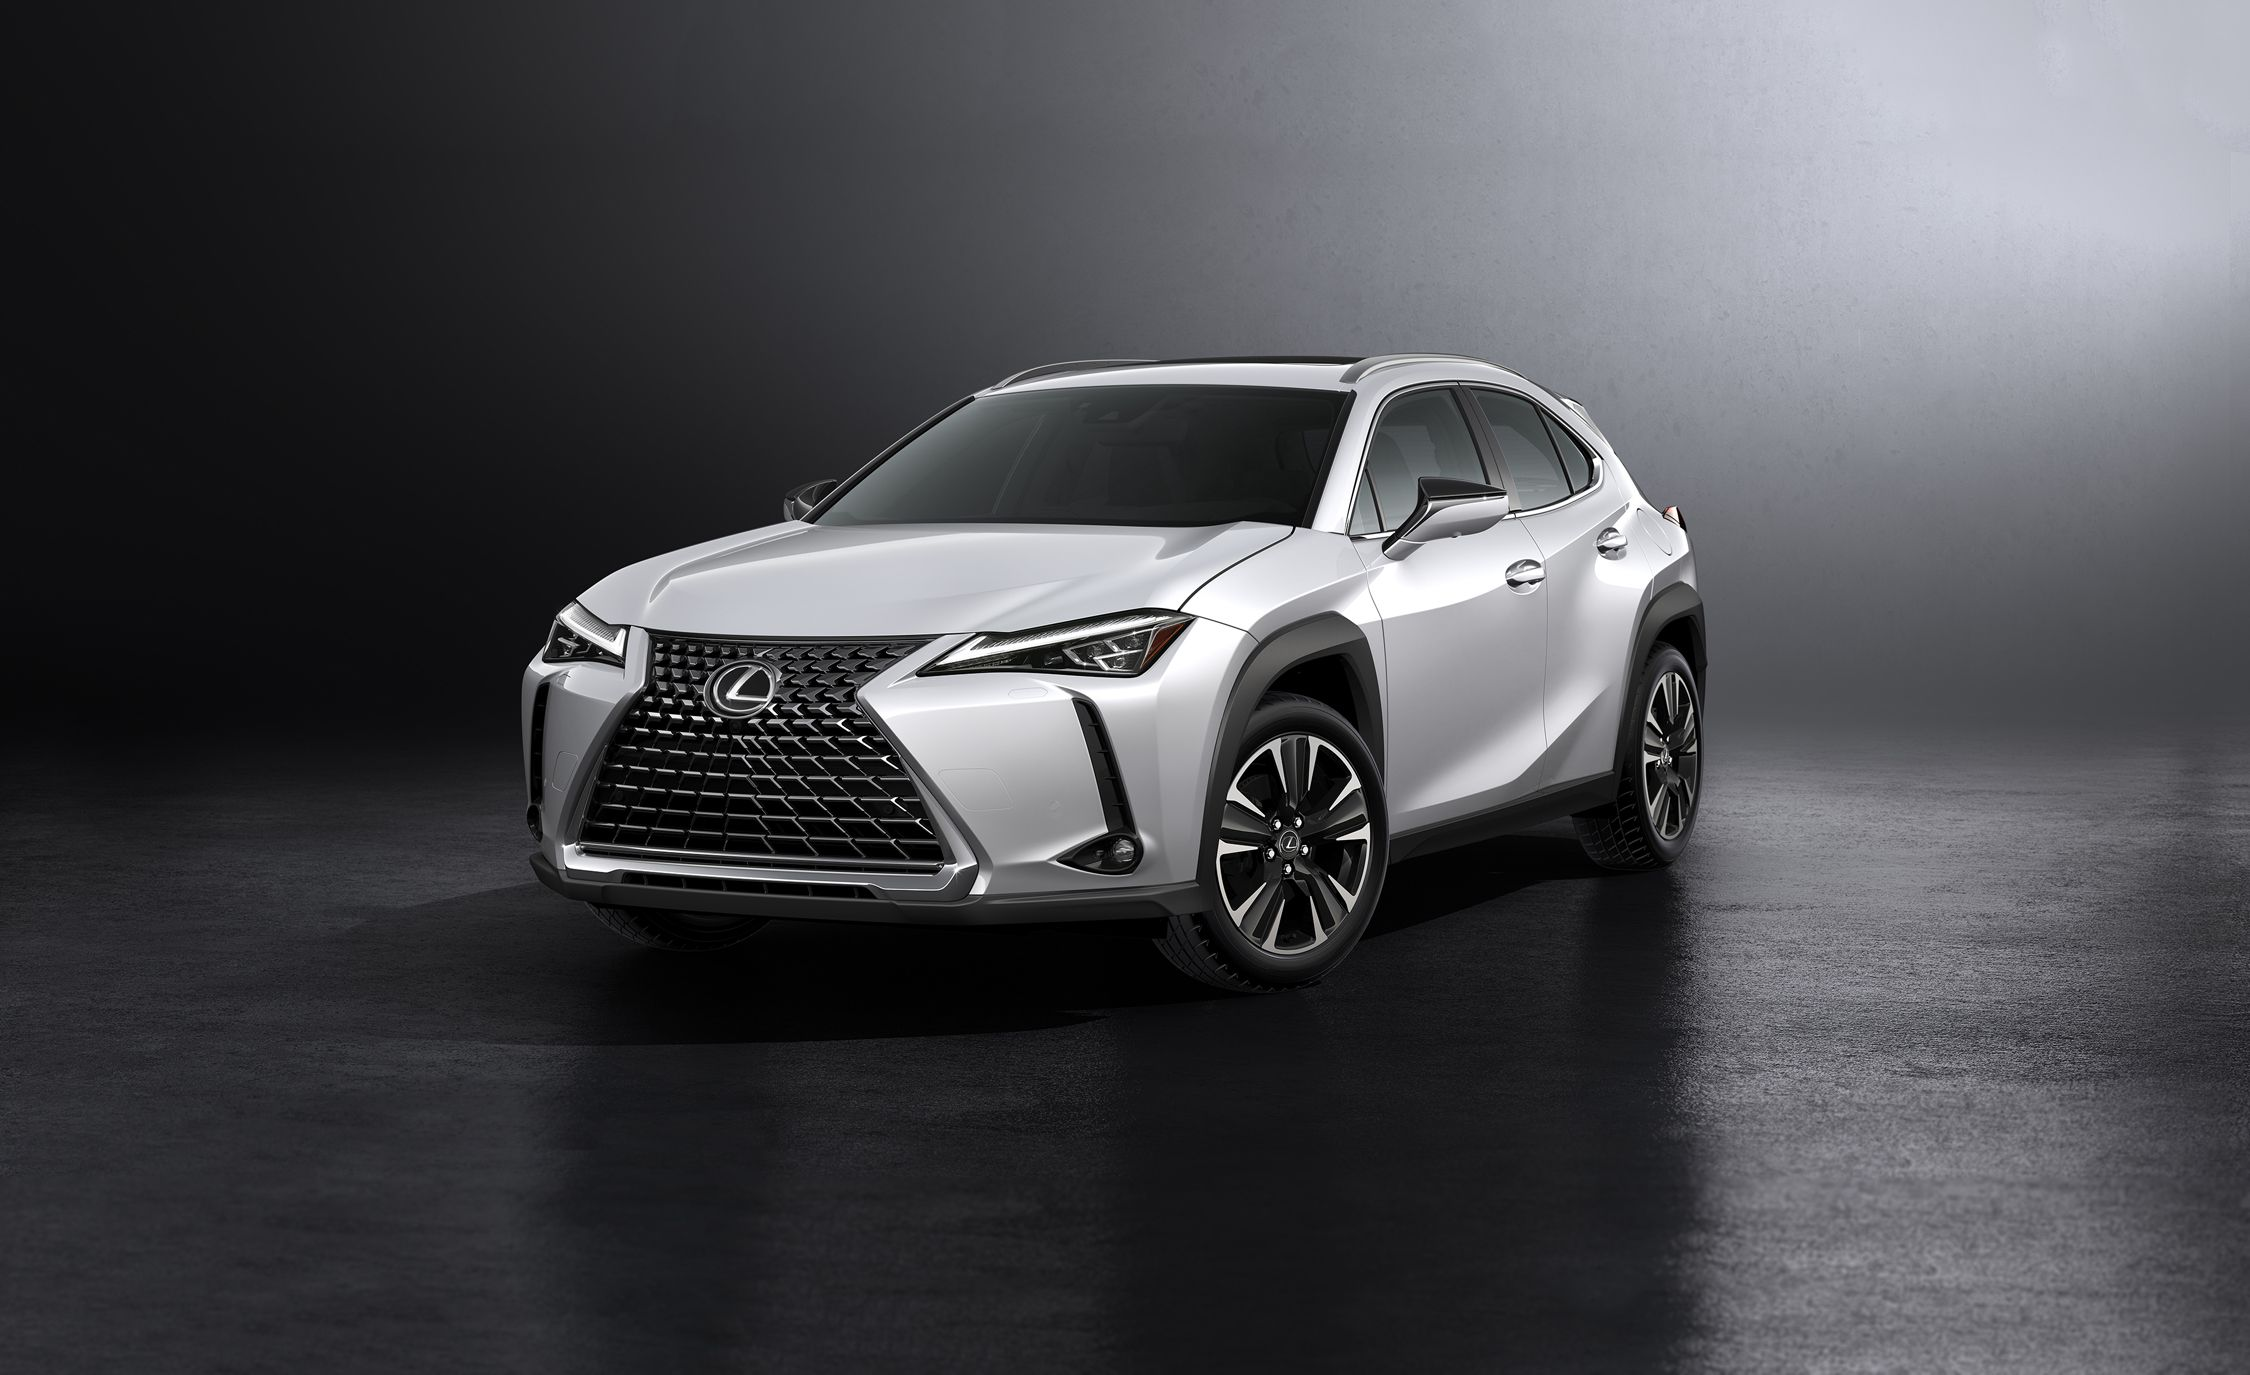 2019 Lexus Ux Crossover Revealed News Car And Driver